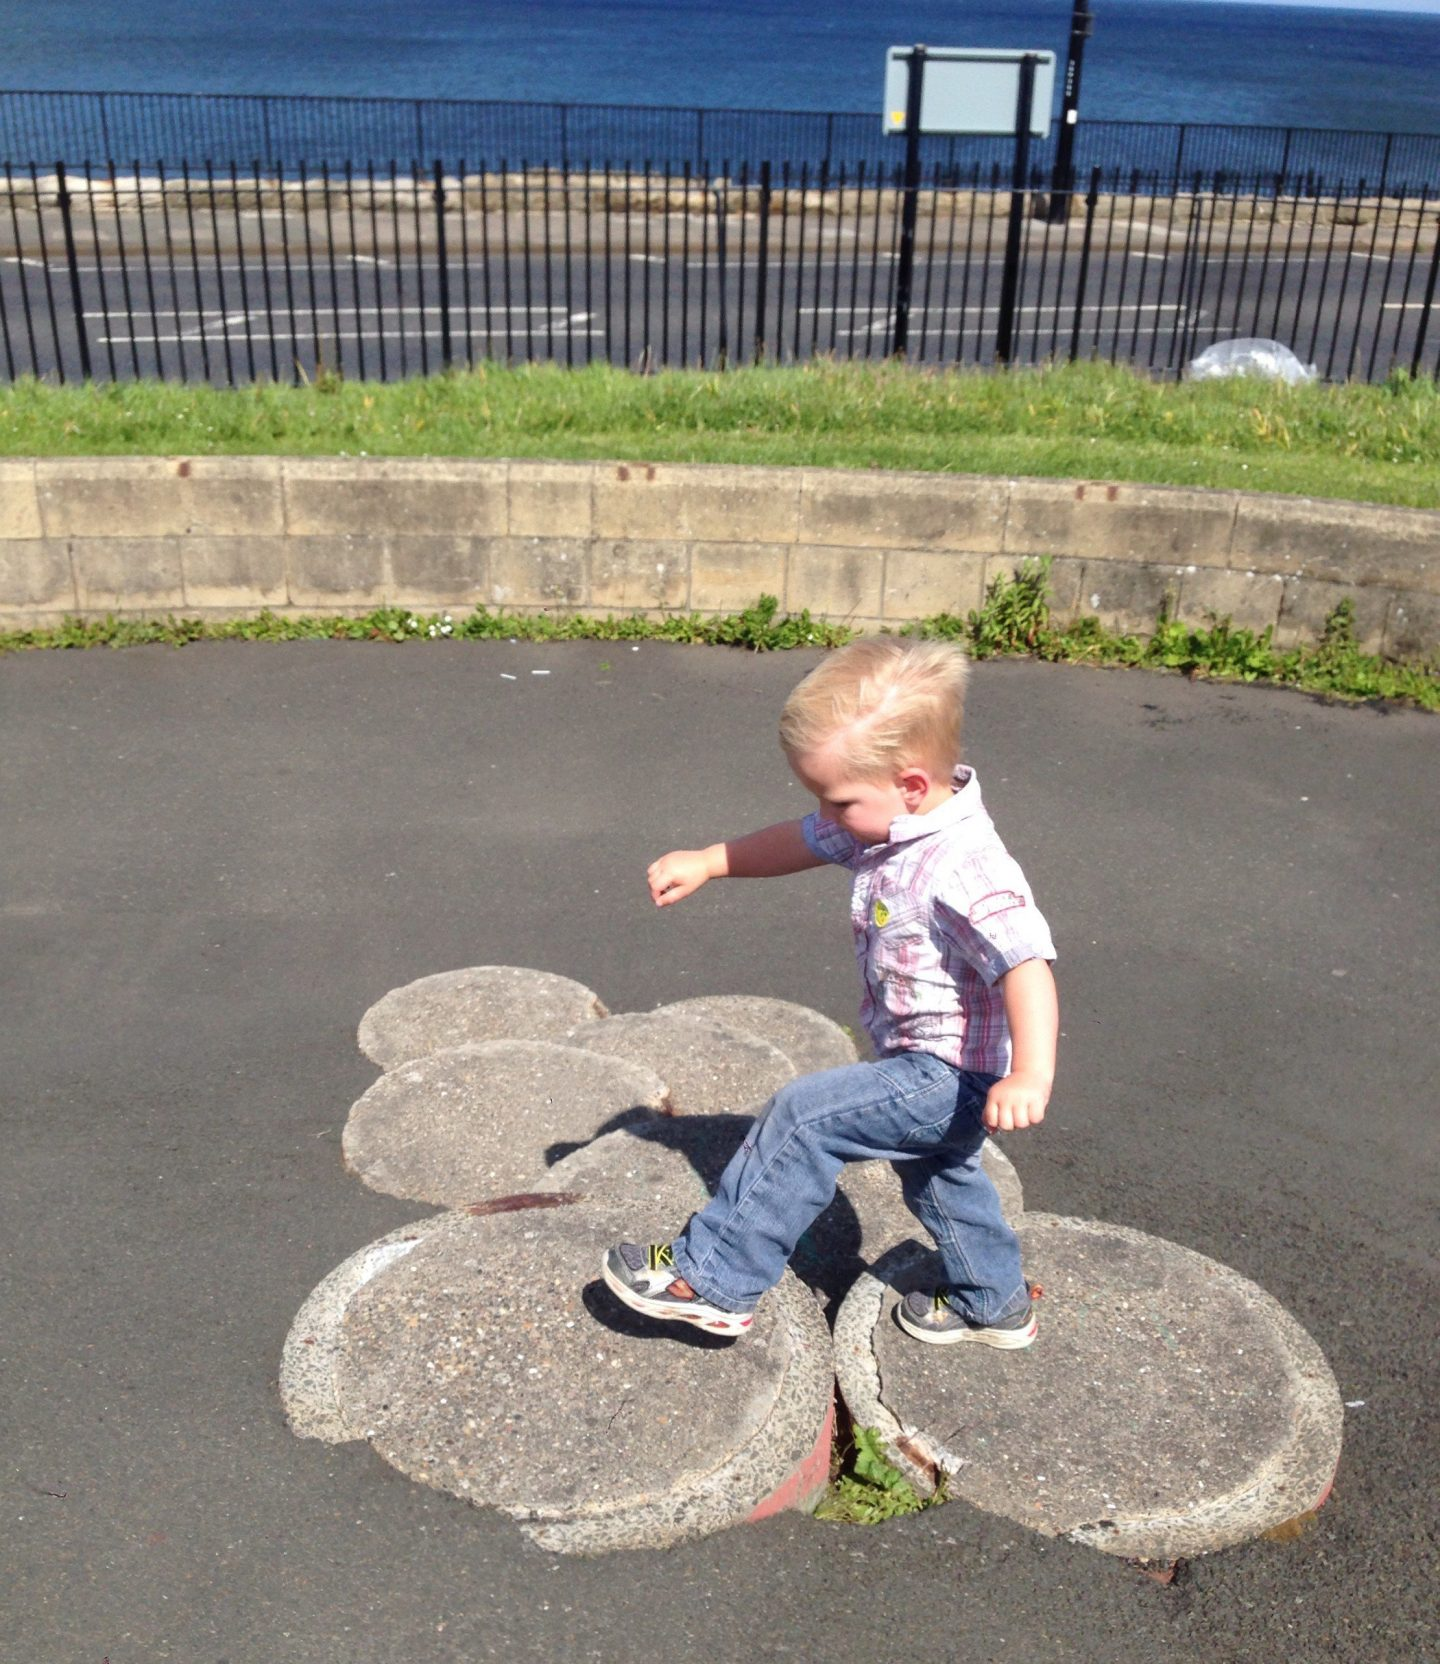 Playgrounds in North Tyneside – Rockcliffe Park Playsite